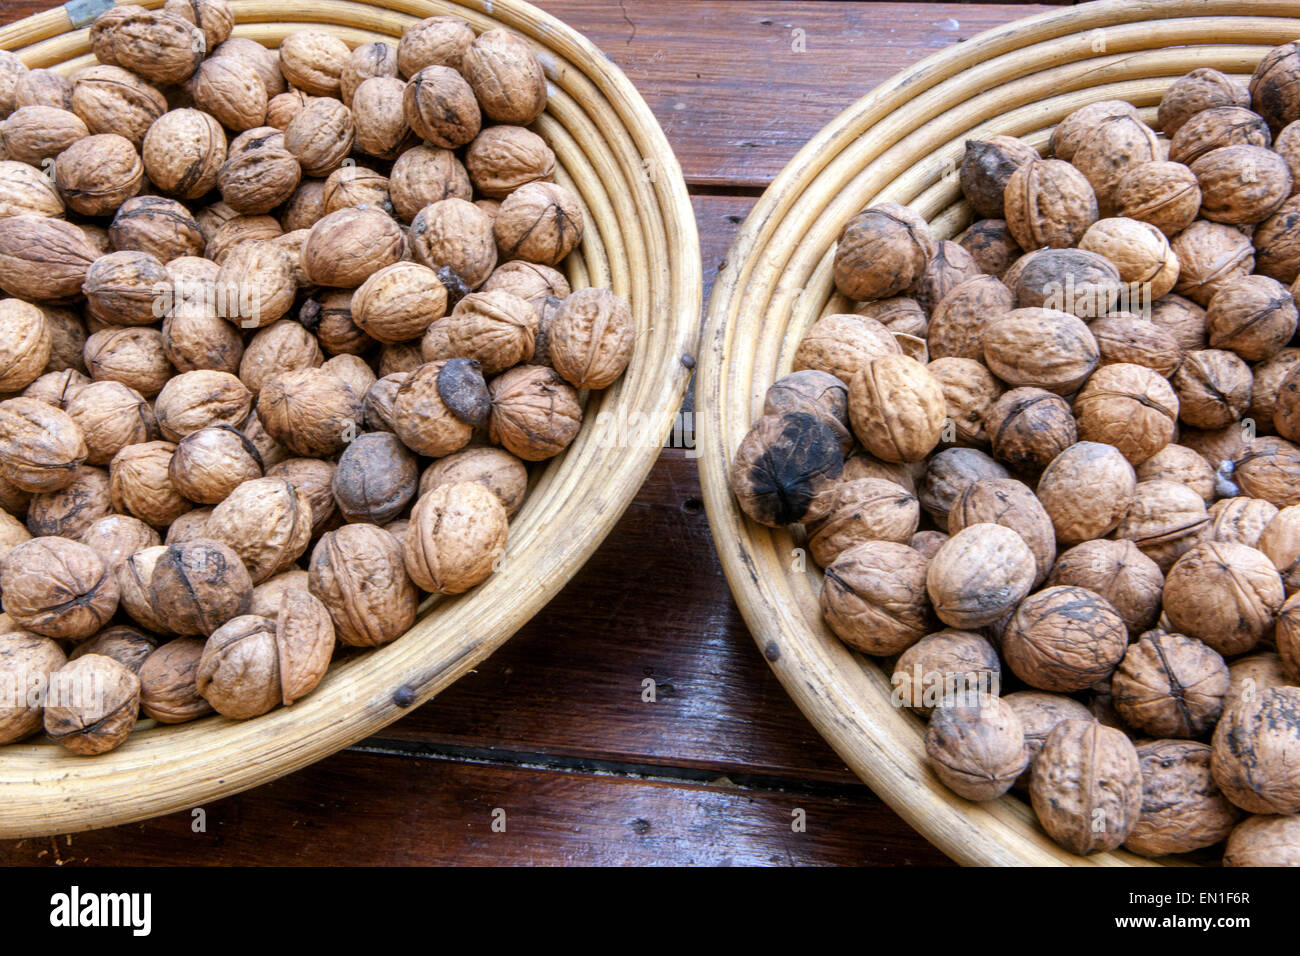 walnuts in basket - Stock Image